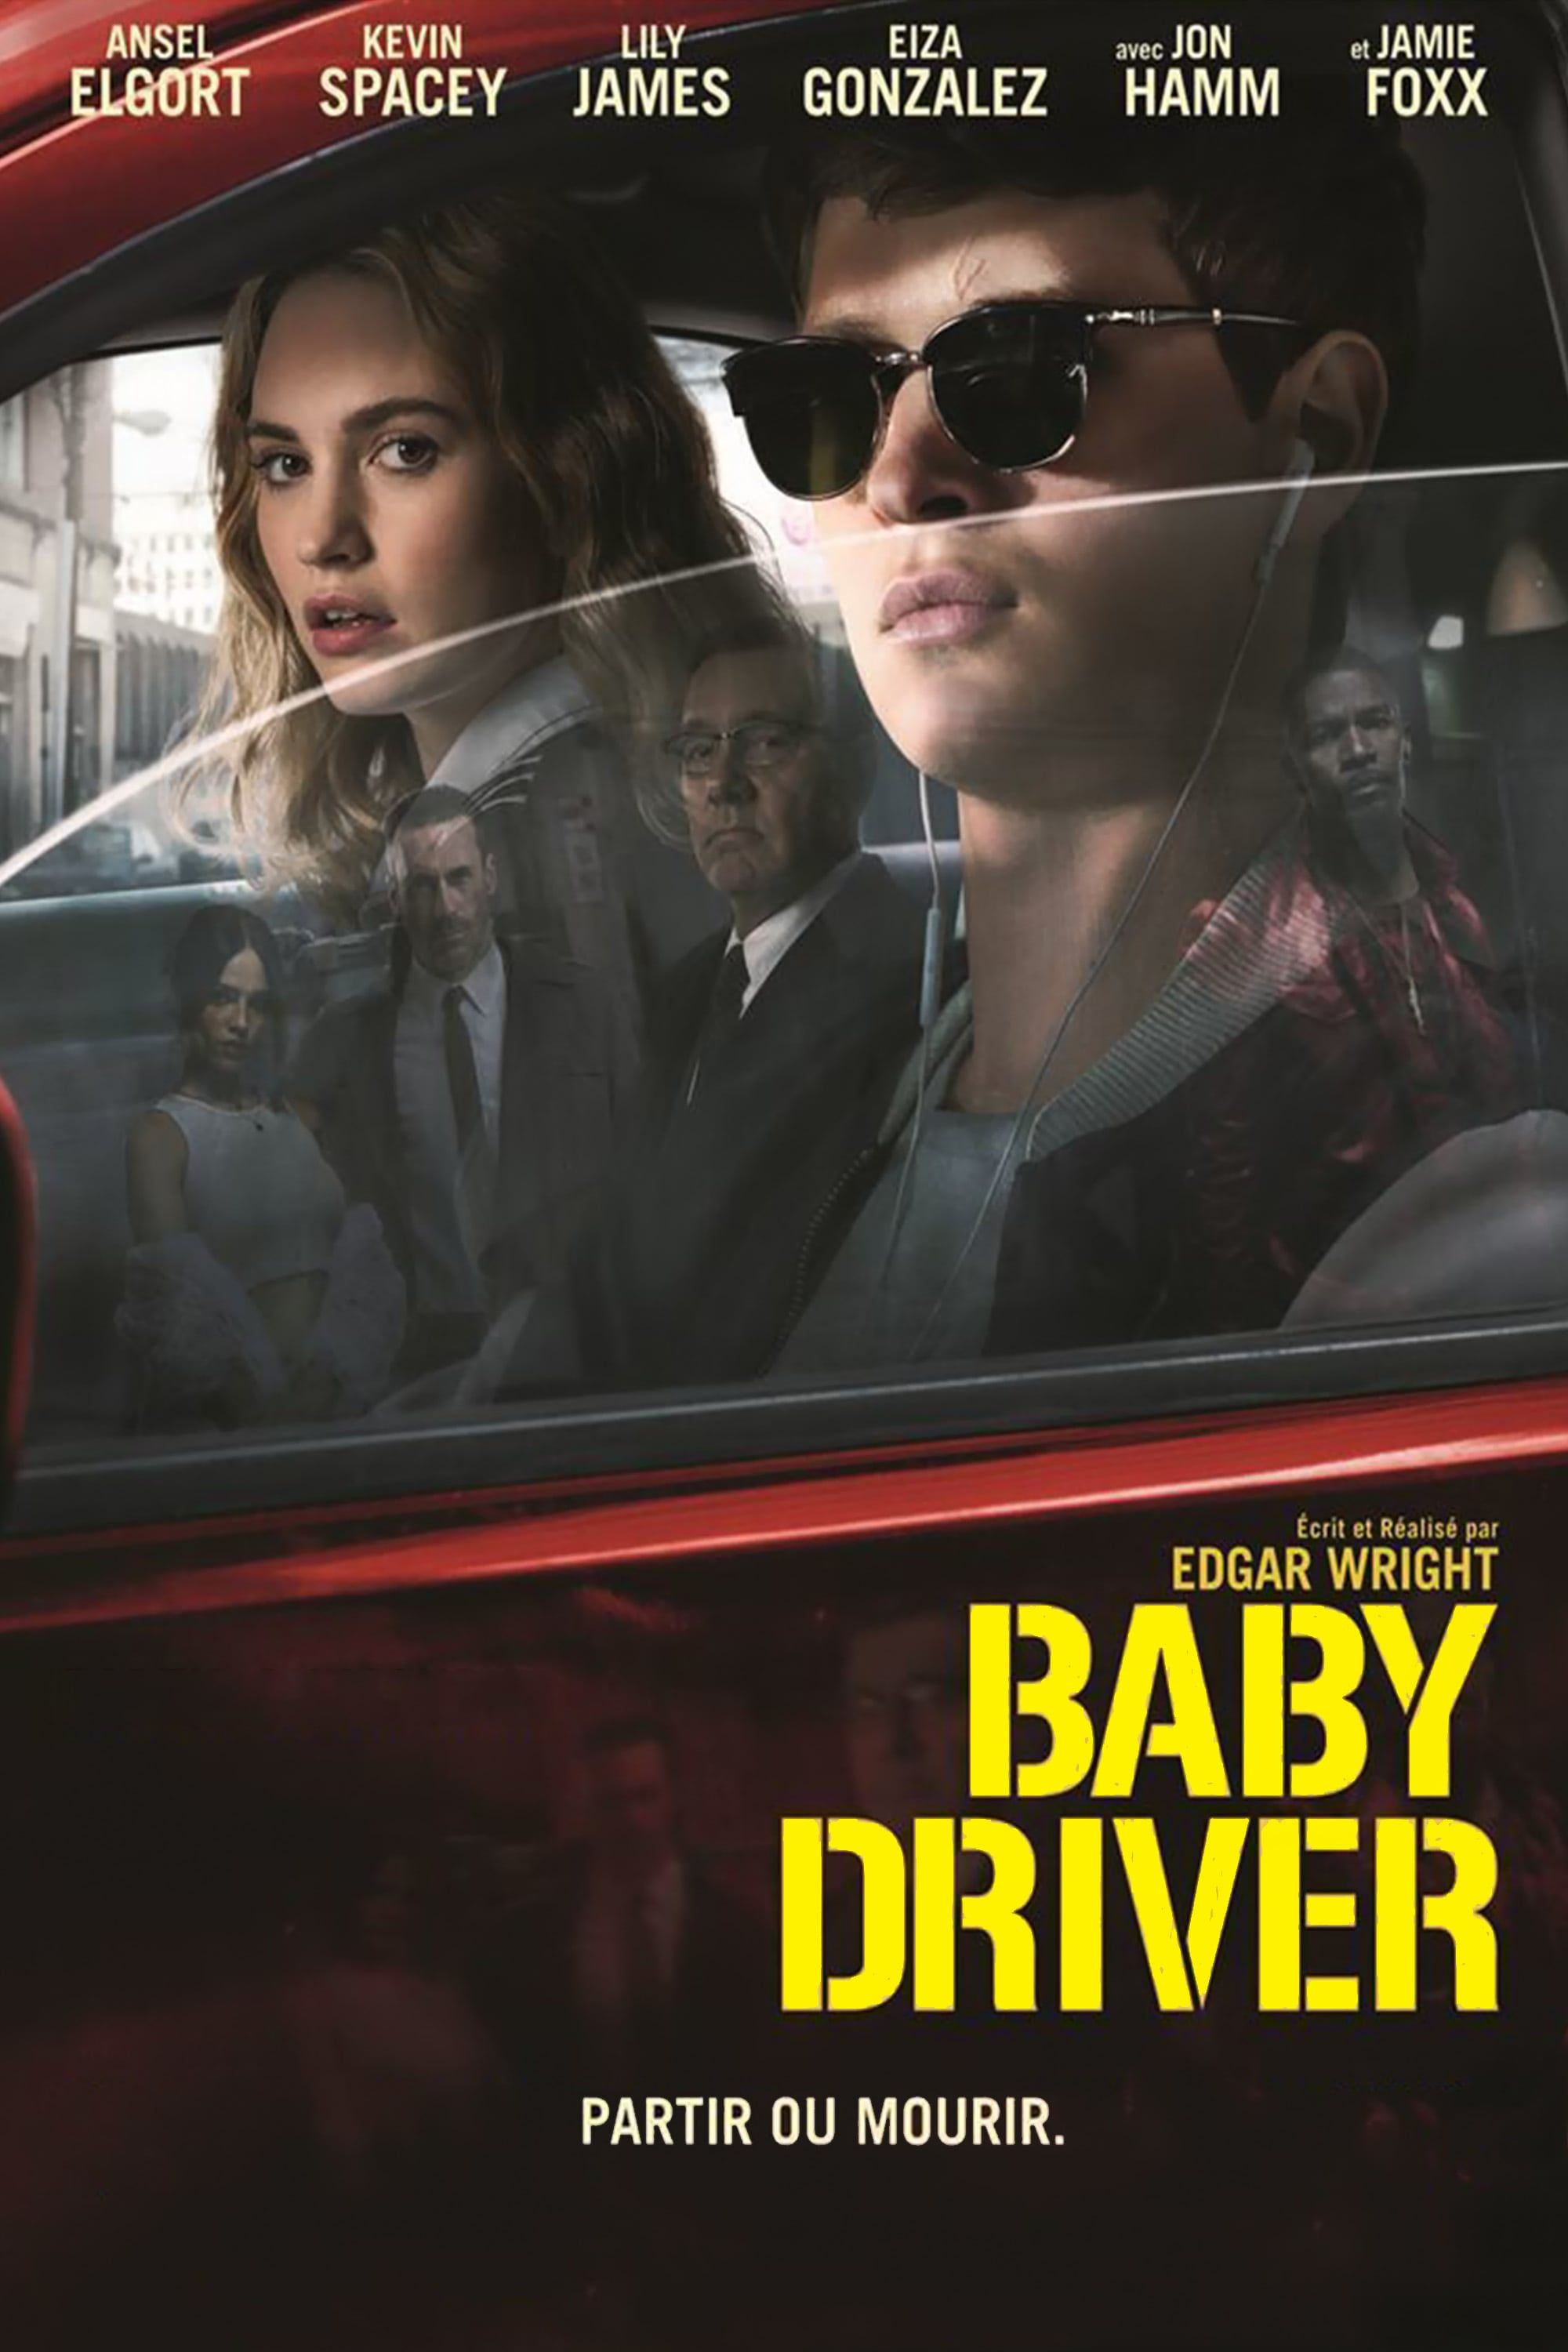 Baby Driver 2017 Baby Driver Streaming Movies Free Baby Driver Full Movie